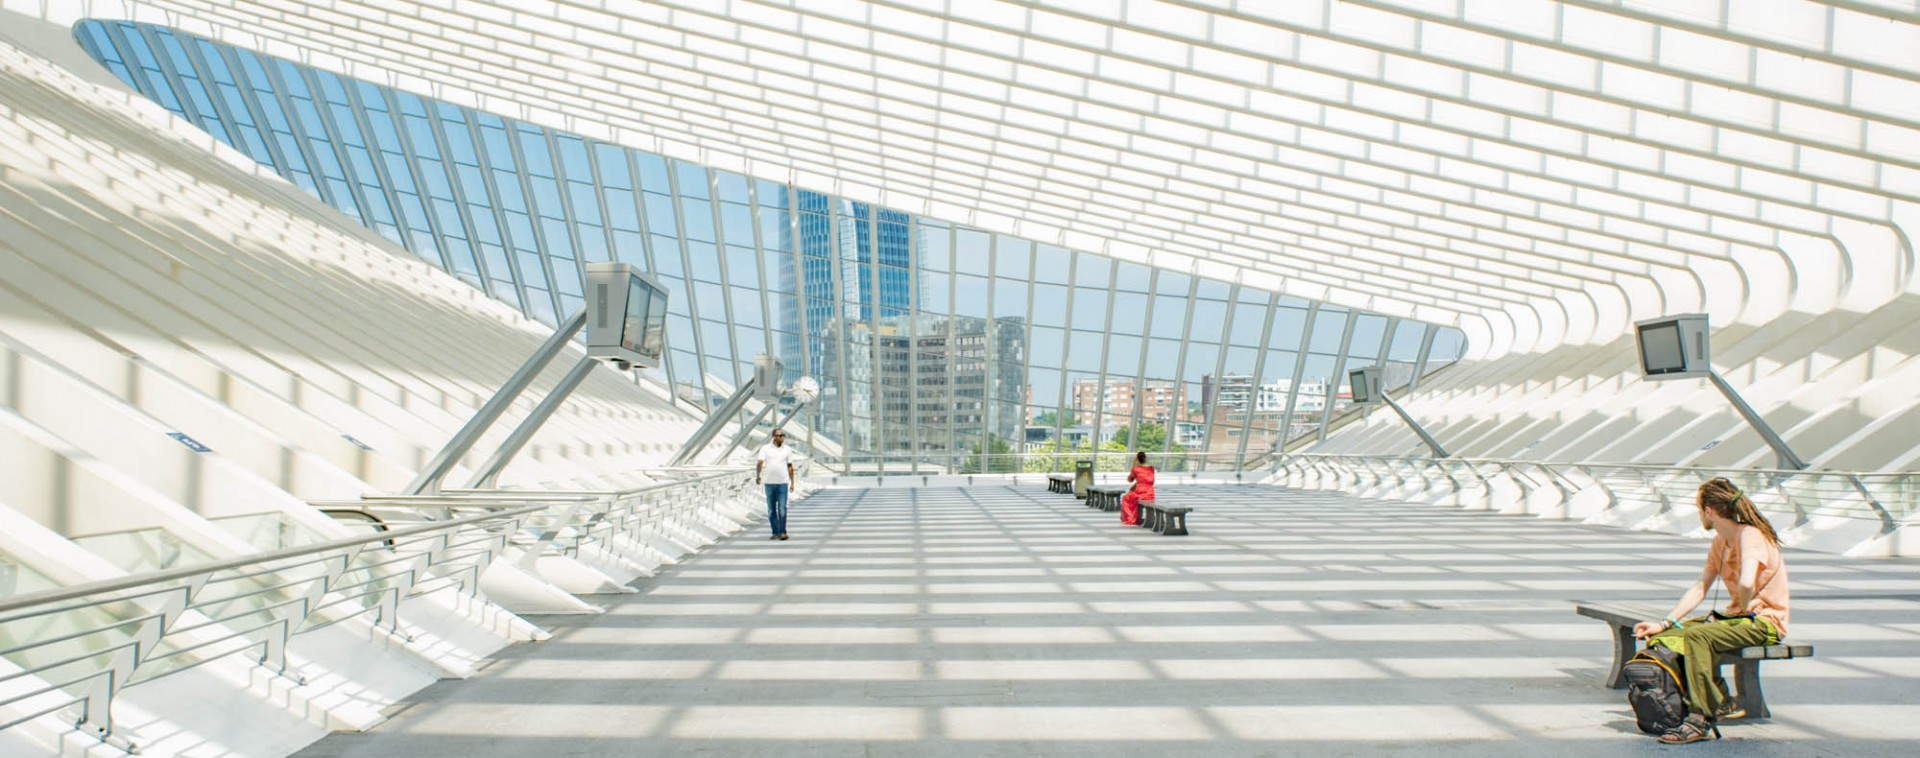 The Business tourism destination - Liège-Spa Businessland | © FTPL-Jean-Marc Léonard-Gare SNCB de Liège-Guillemins – Arch.-Ing. Santiago CALATRAVA